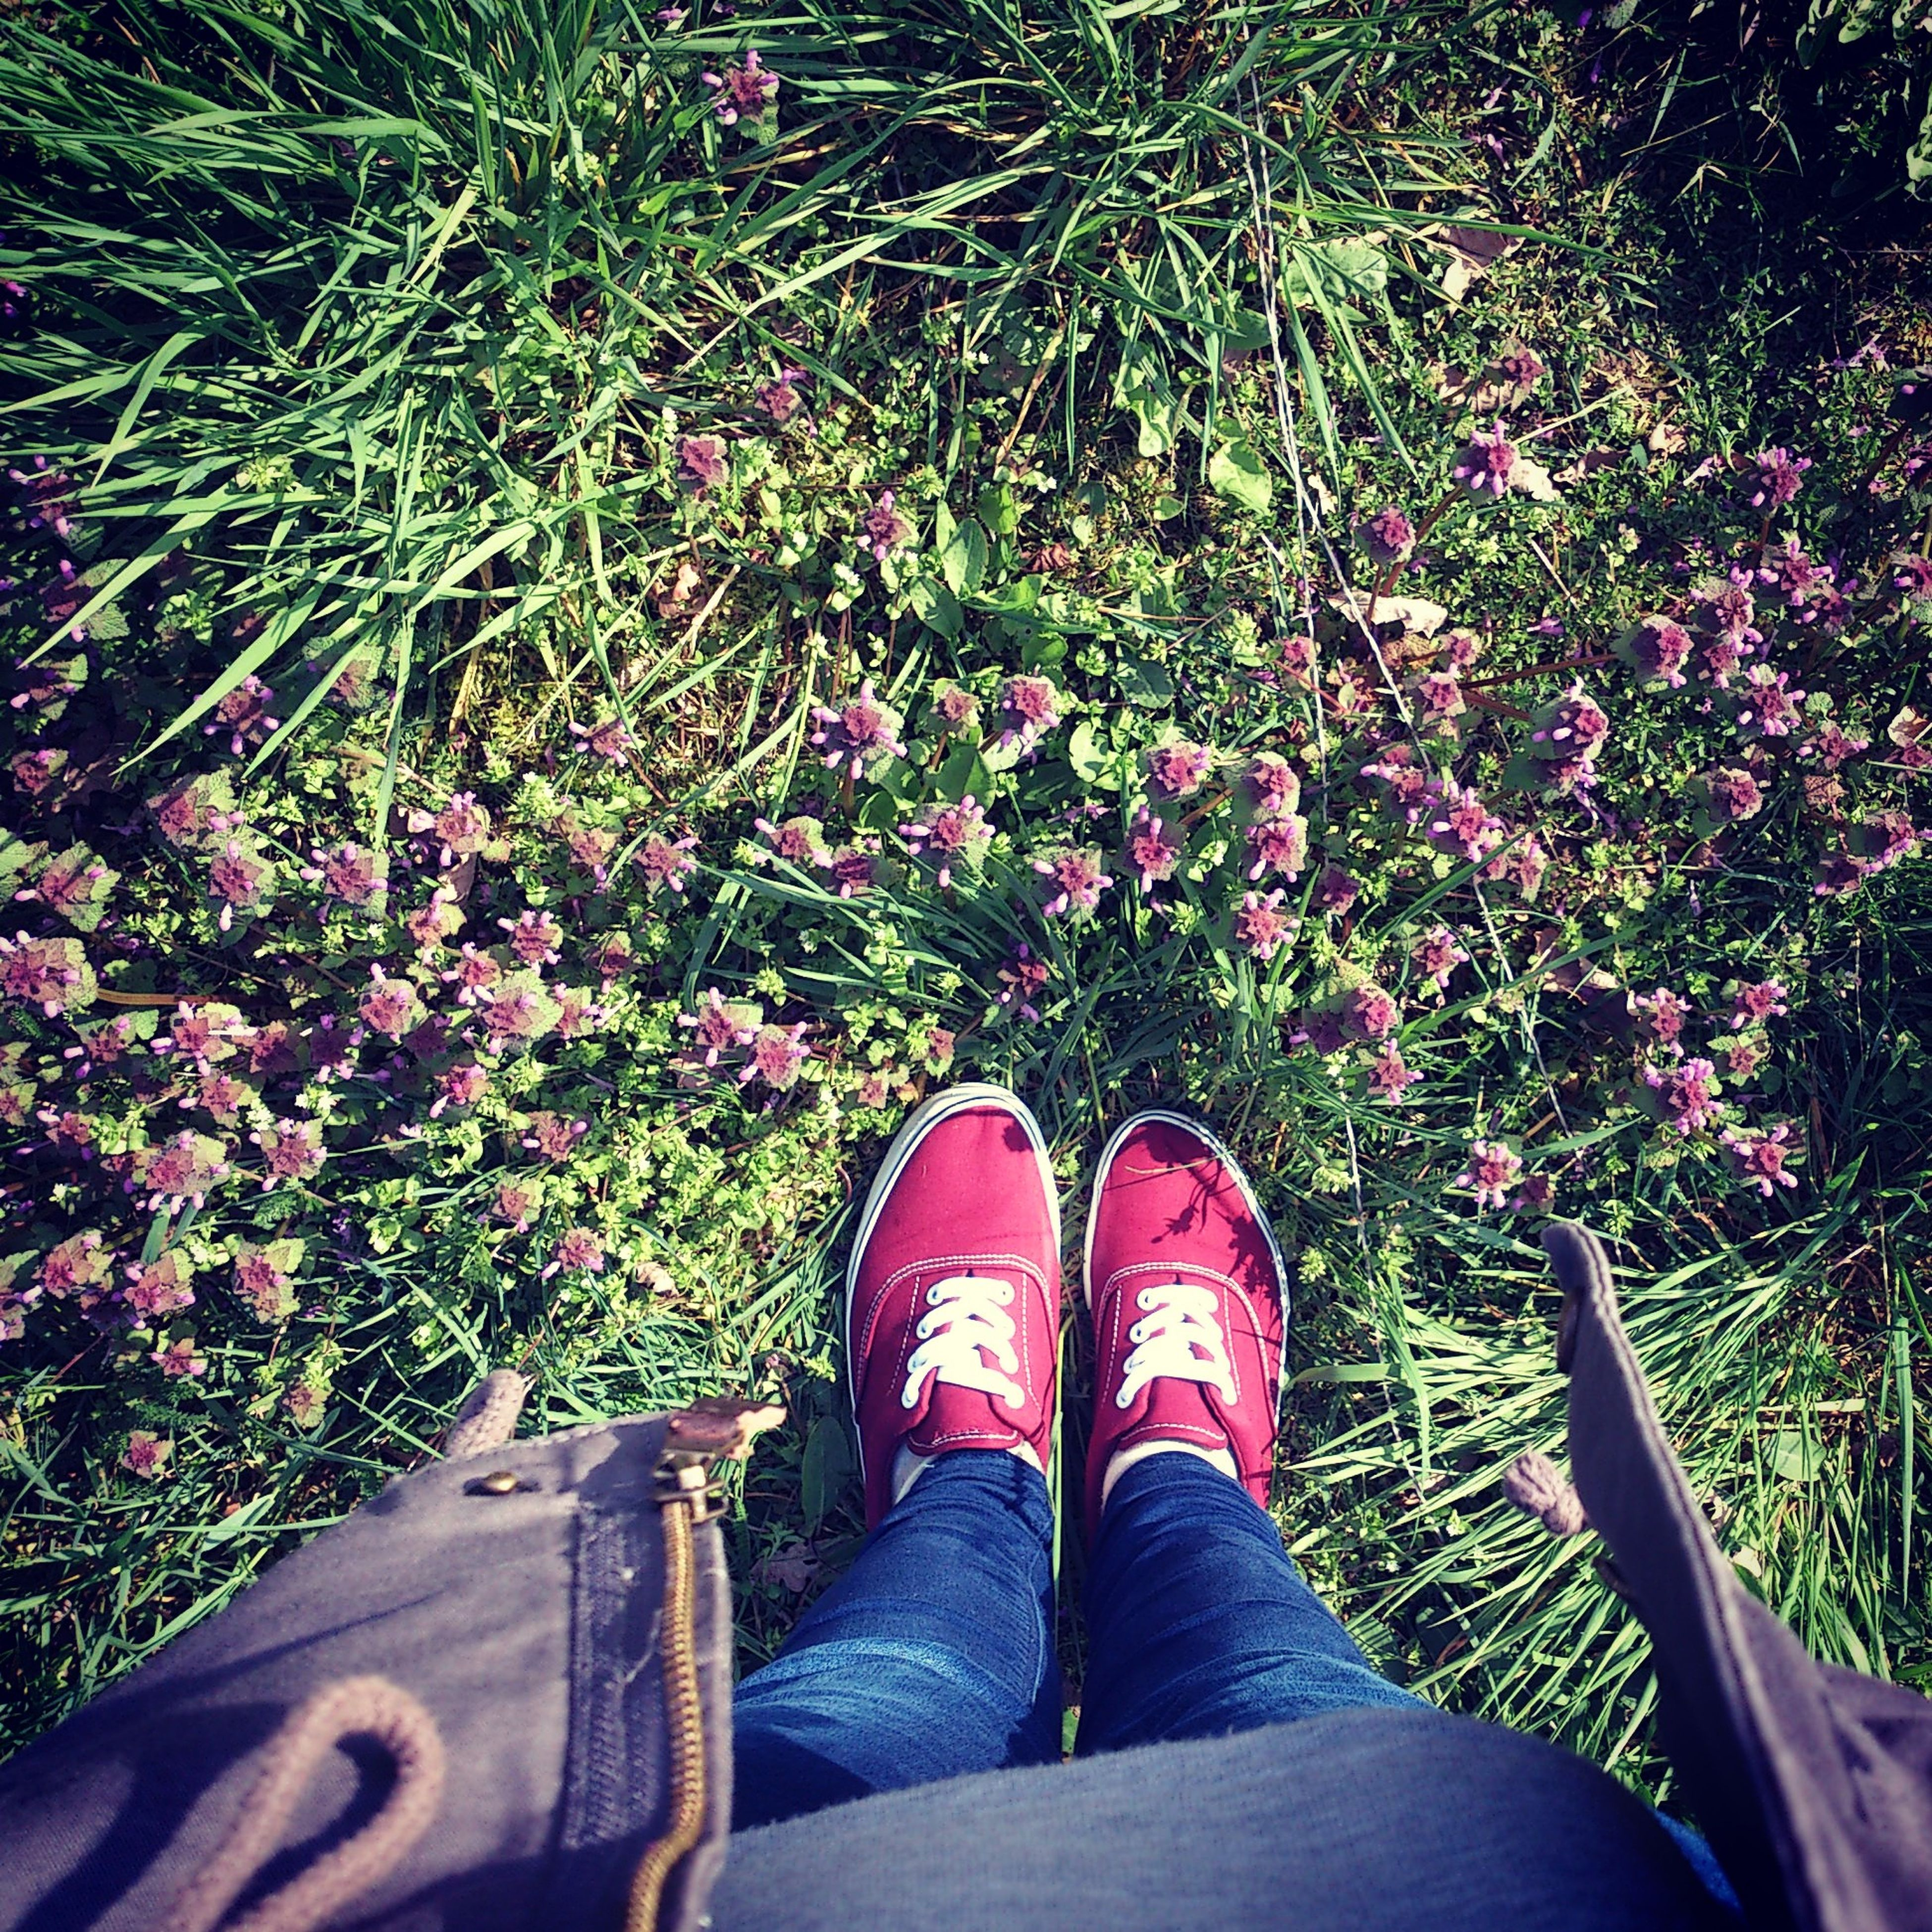 low section, person, shoe, personal perspective, standing, human foot, lifestyles, flower, high angle view, footwear, jeans, leisure activity, growth, men, plant, outdoors